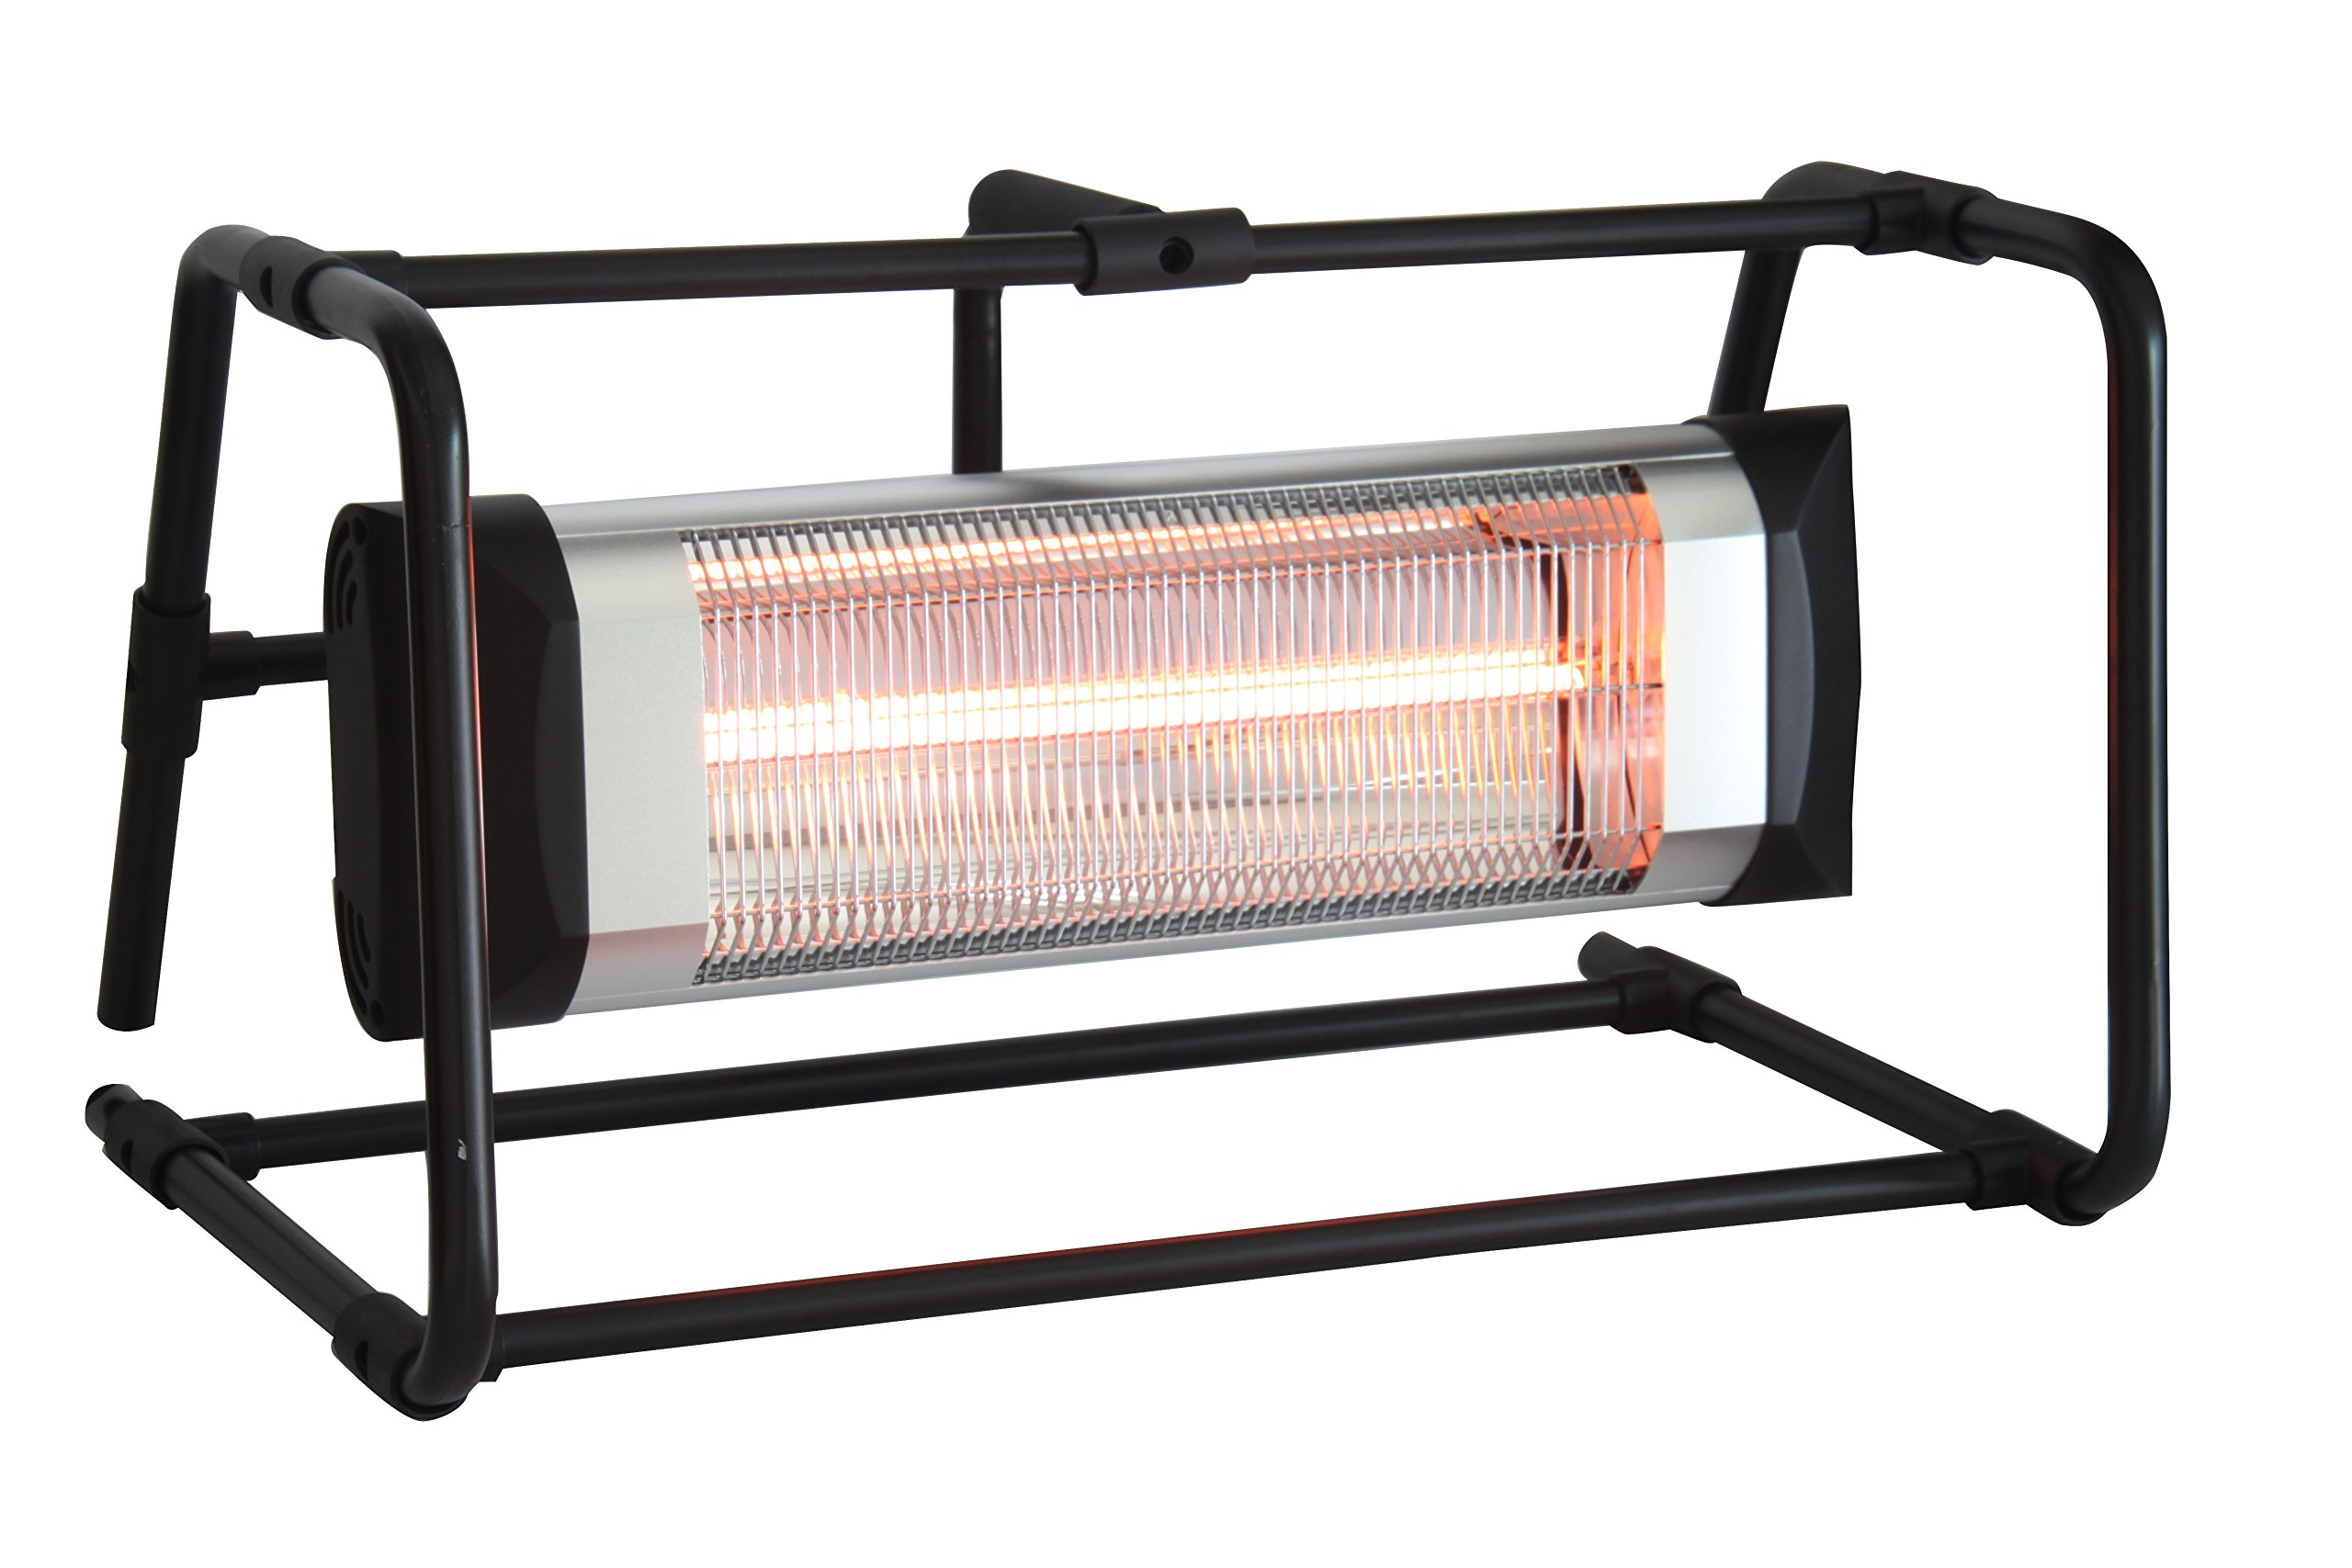 Ener-G+ HEA-21548-BB Infrared Electric Outdoor Heater-Portable, Durable, Heavy Duty, Kids and Pets | Construction, Garage | 120V, Water/Dust Resistant, Overheat Protection, Safe for Environment, Black by Ener-G+